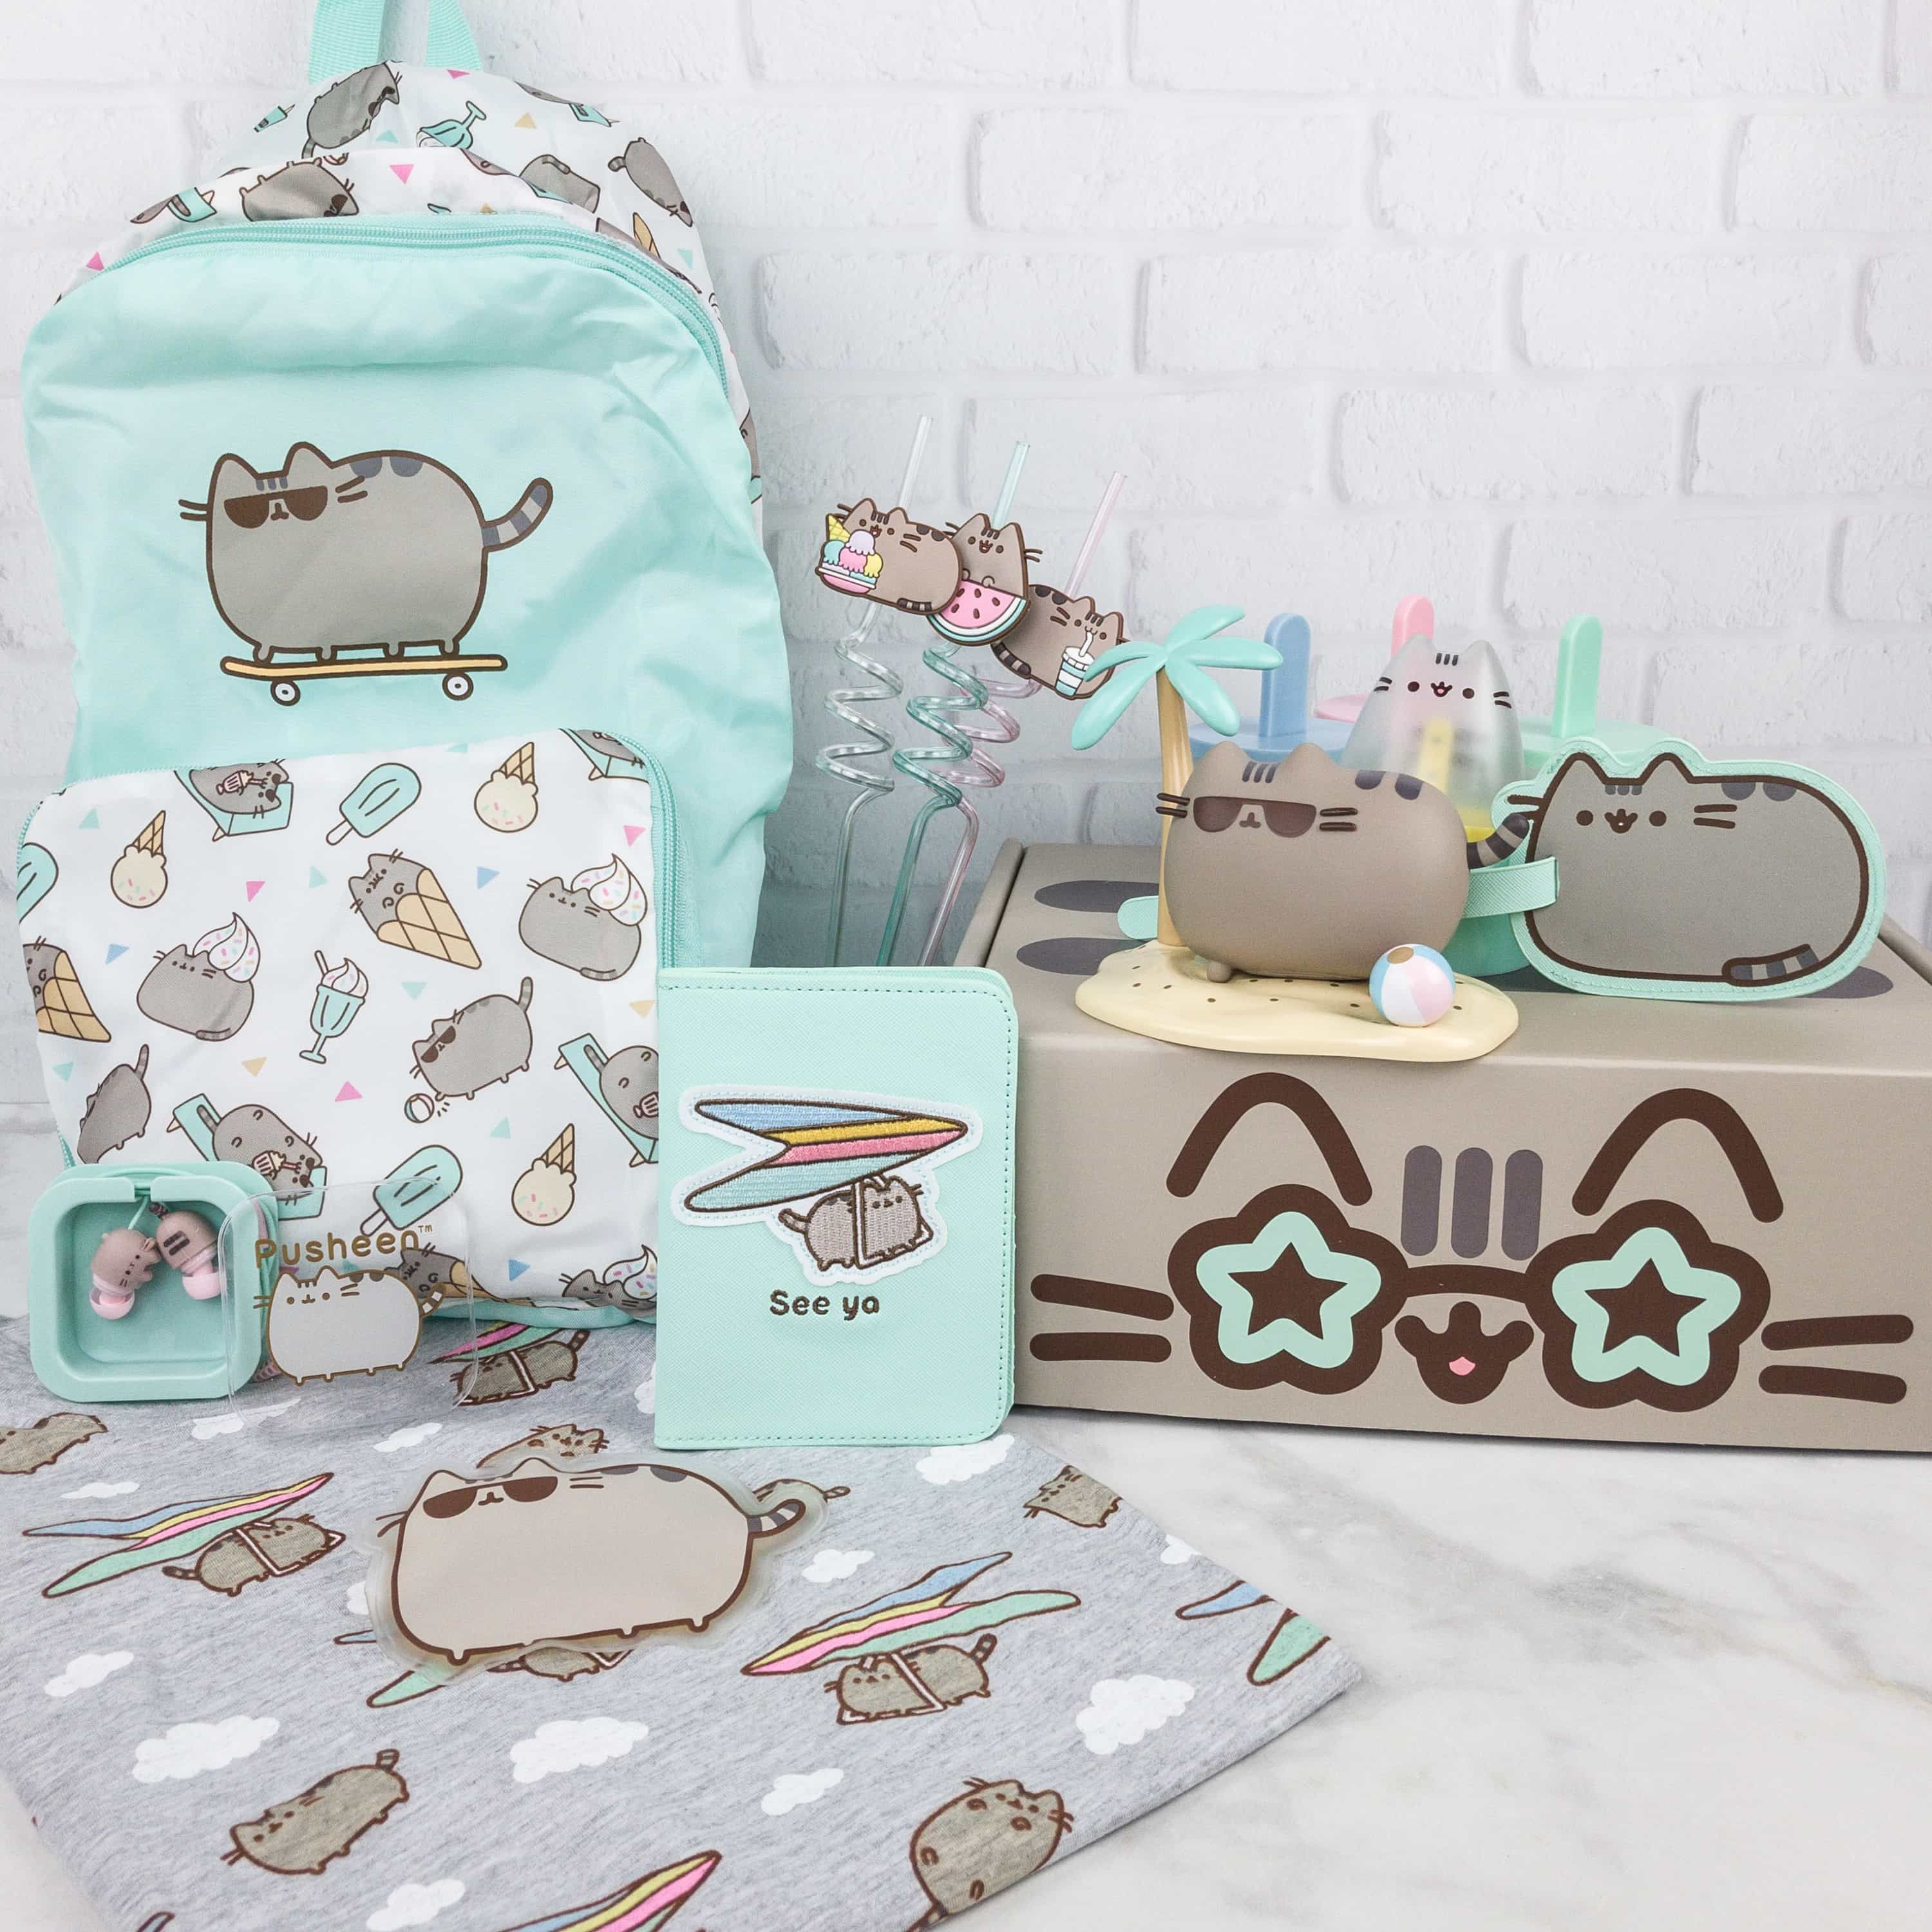 NEW Pusheen Box Subscription Complete SURFER SUMMER 2018 Box Cat Lover Gift Set